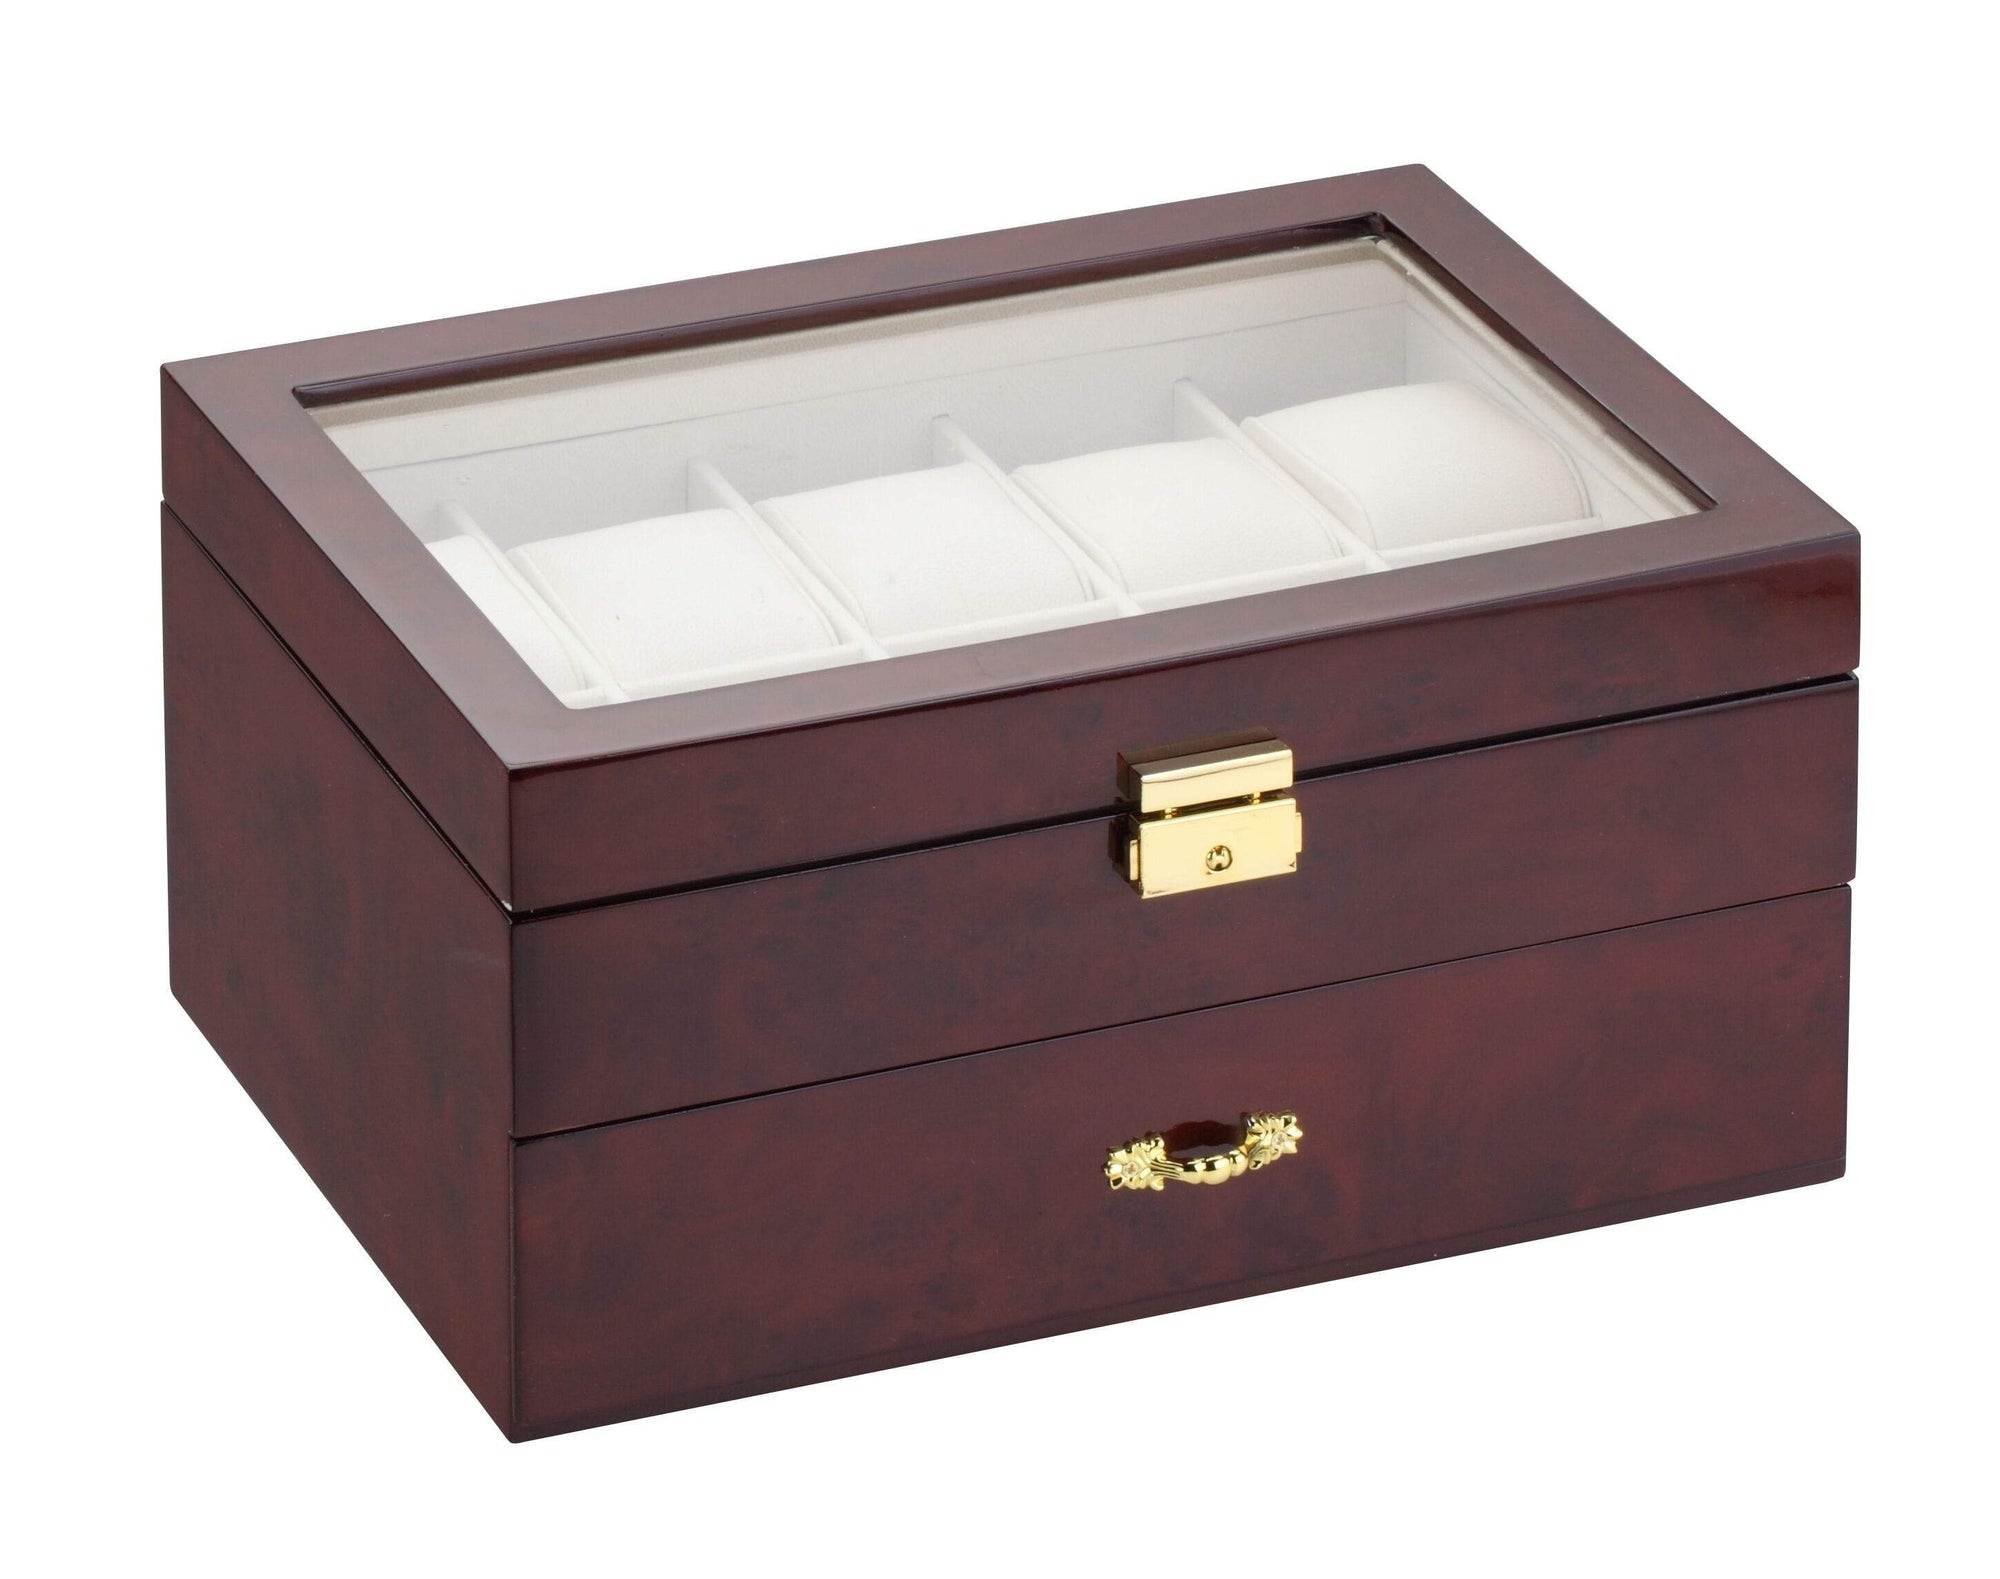 Diplomat Burl Wood Finish Ten Watch Case with Cream Leatherette Interior and Drawer With Pen and Cufflink Storage Armadillo Safe and Vault